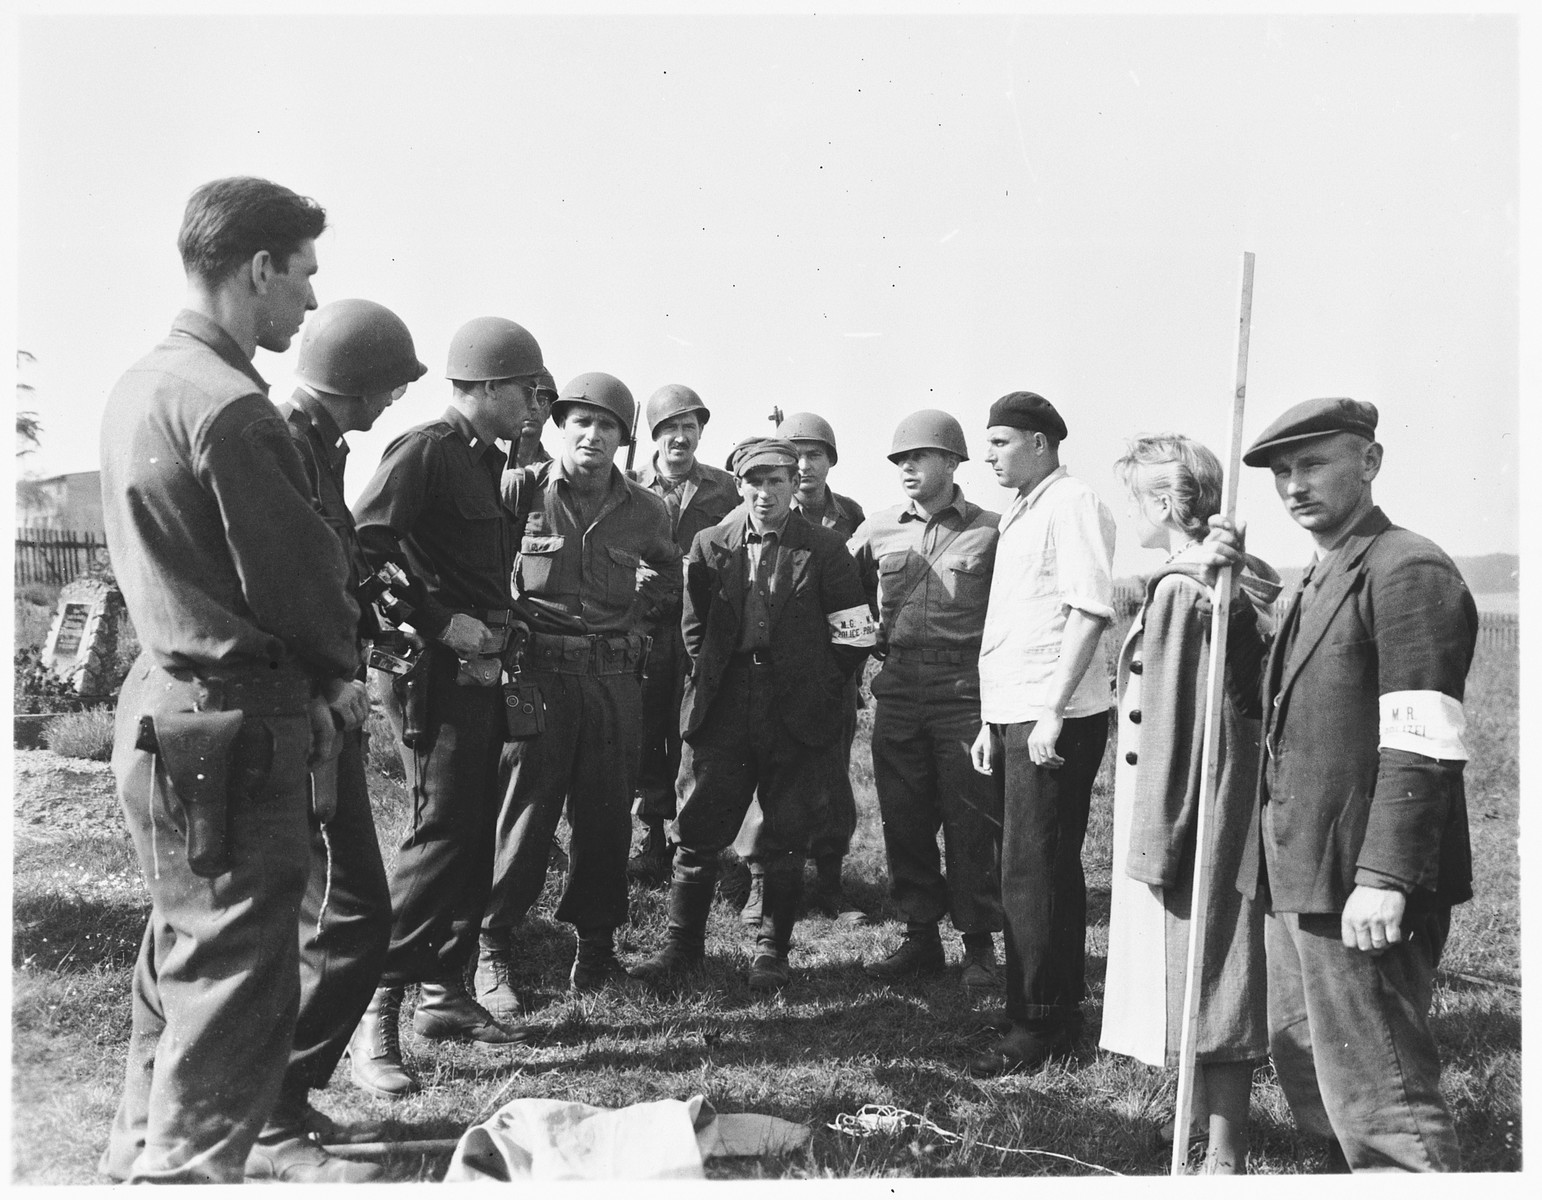 American military authorities question a German civilian from Estedt (pictured third from right) about the atrocity that occurred near the town.